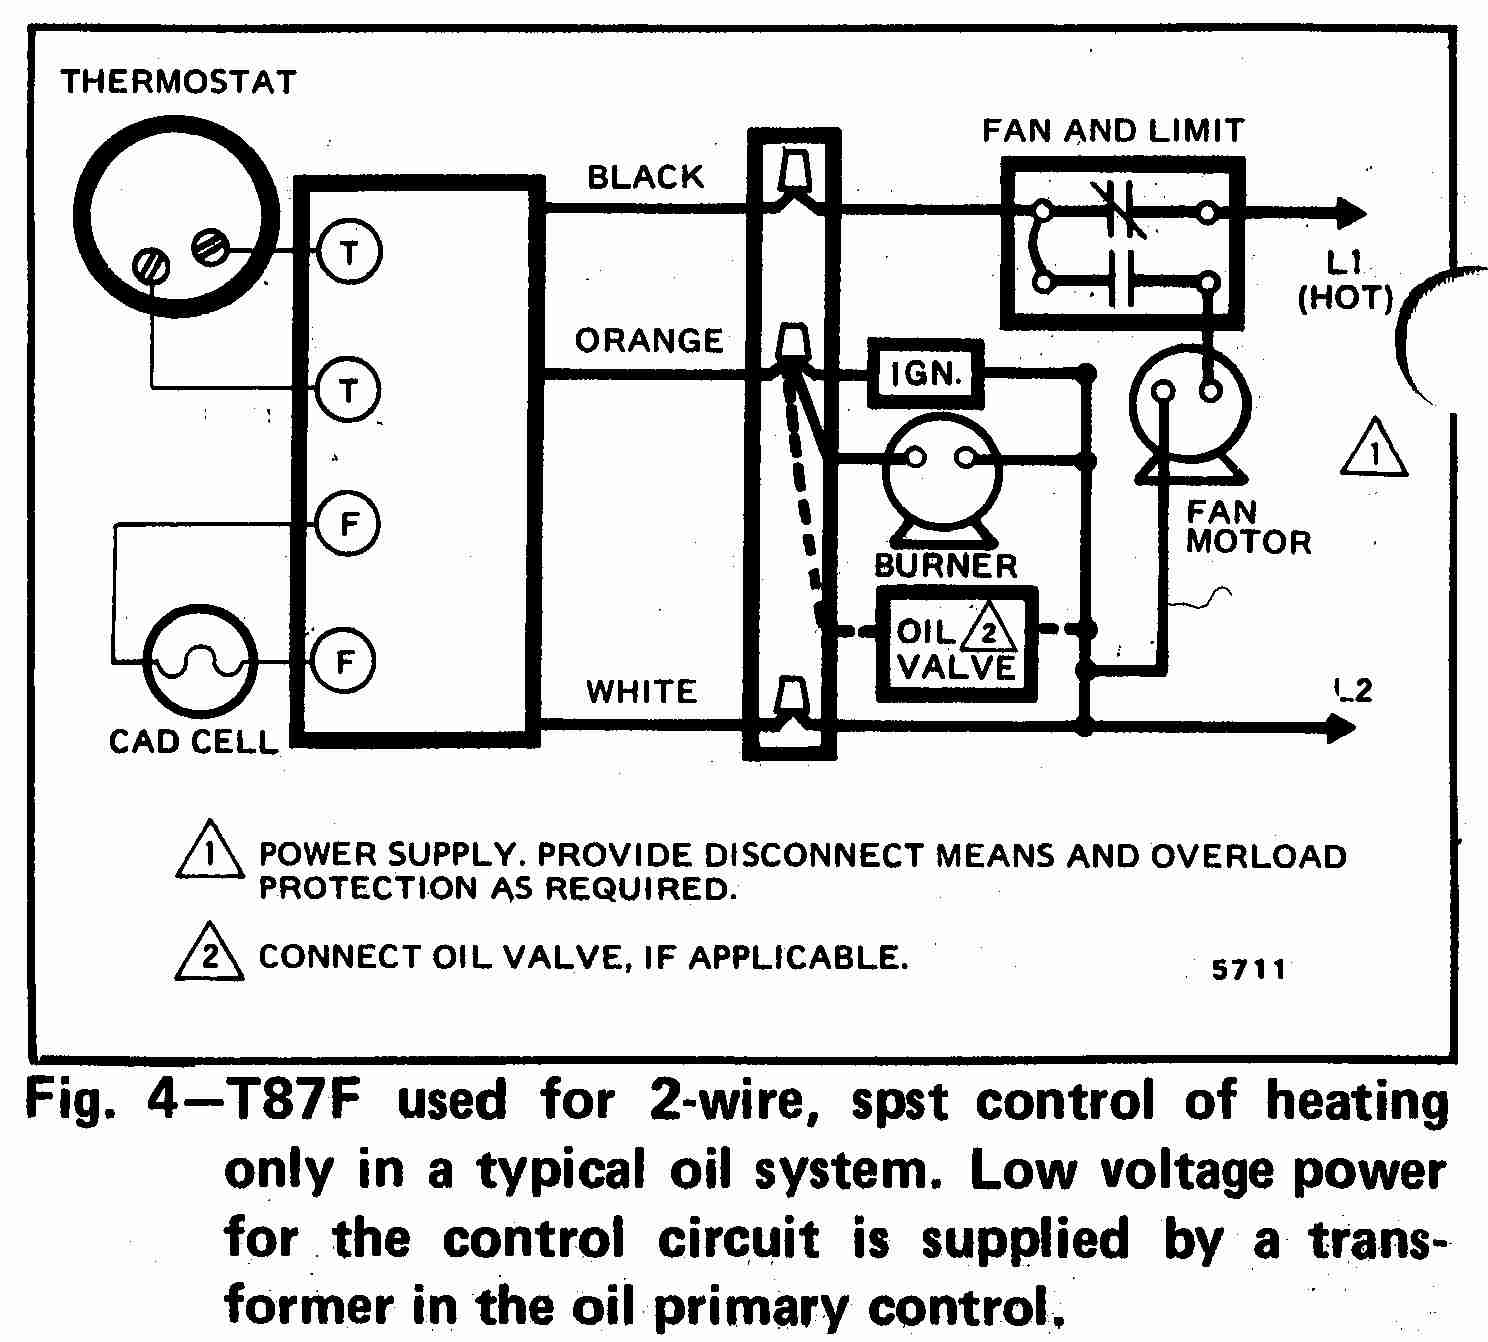 Honeywell Humidifier Wiring Schematic on honeywell oil burner primary control wiring diagram